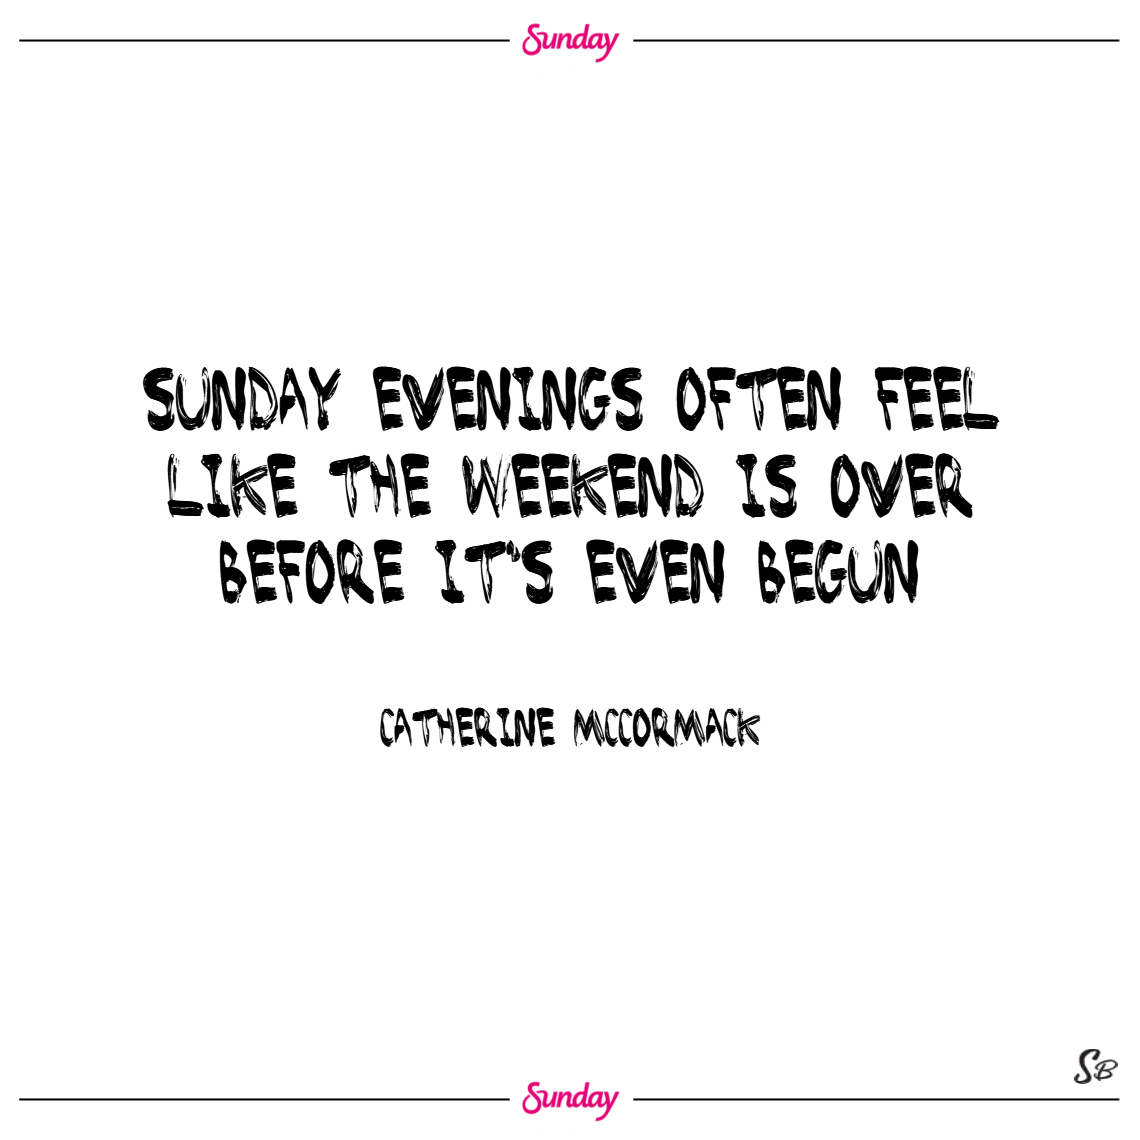 Sunday evenings often feel like the weekend is over before it's even begun. – catherine mccormack sunday quotes